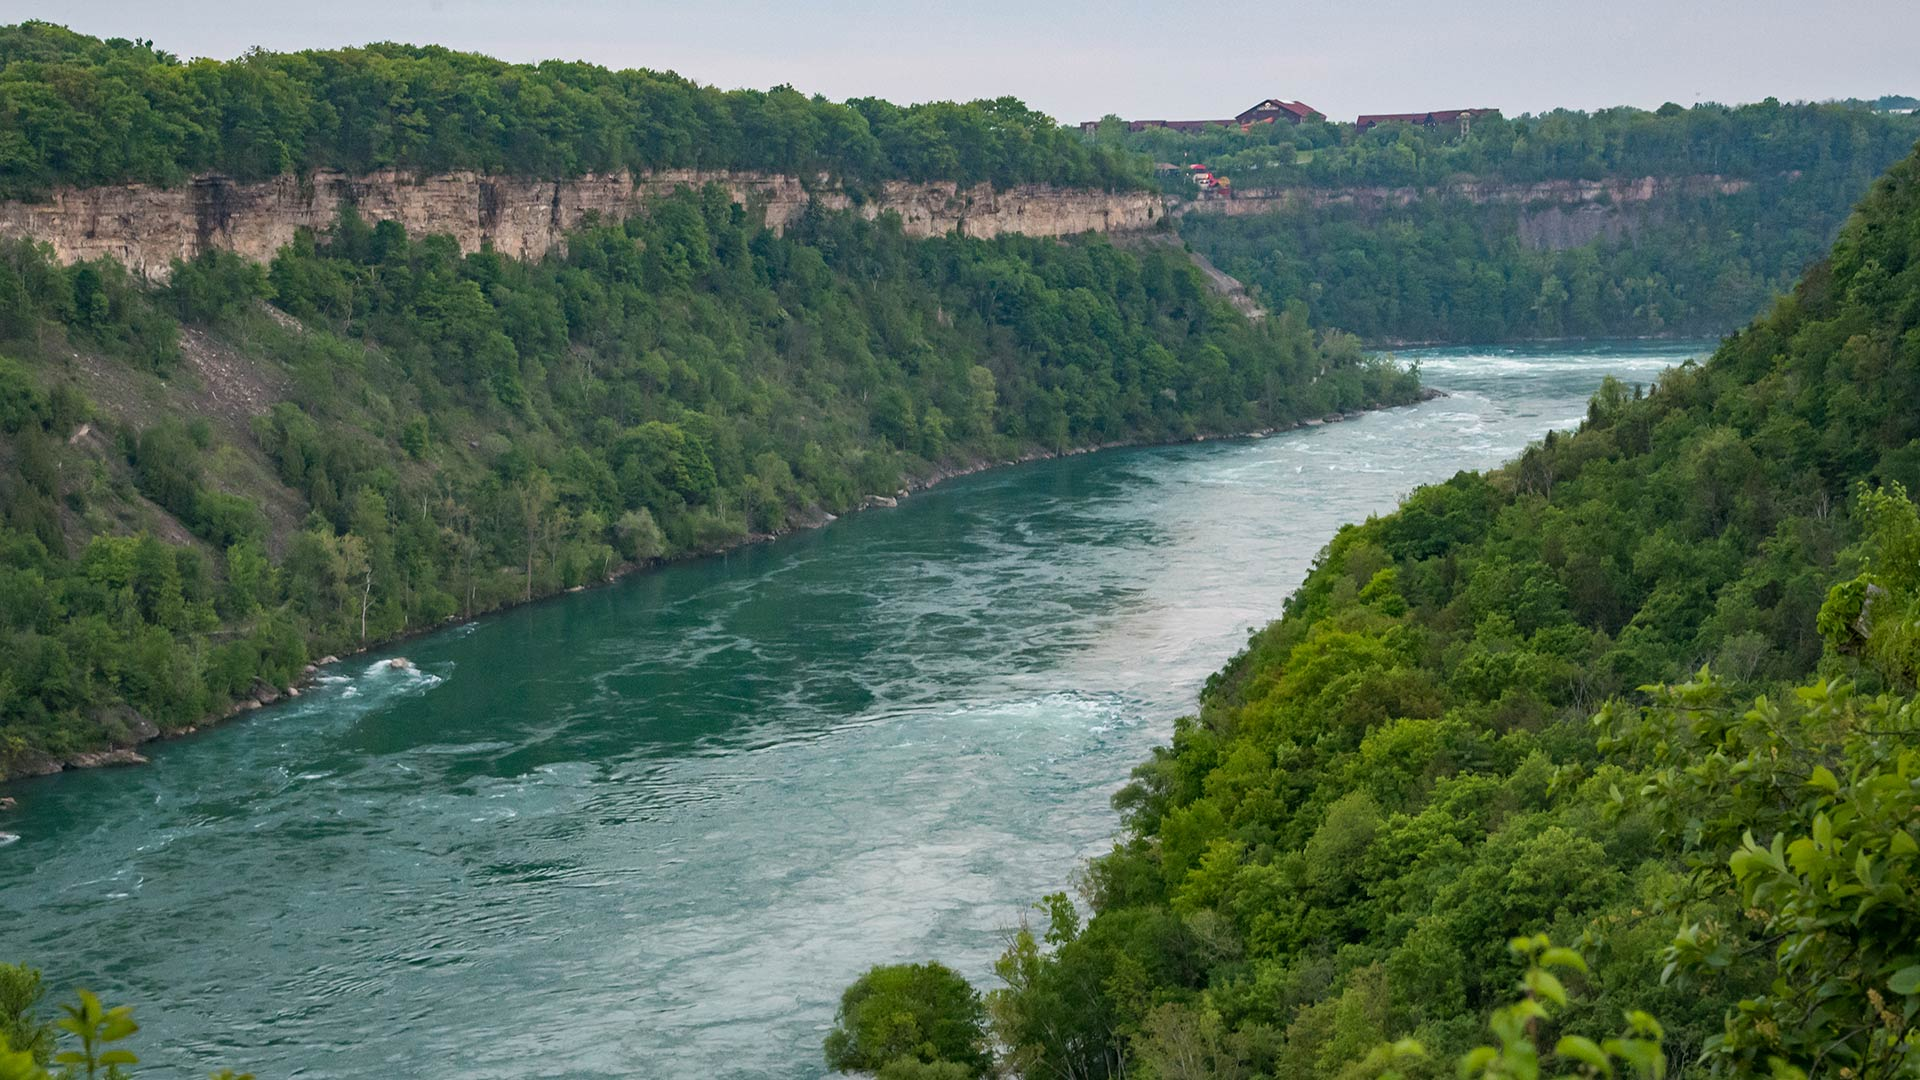 The Niagara River is seen west of the river on May 26, 2018 in Niagara-on-the-Lake and Niagara Falls, Ontario, Canada. | Photo by Patrick Gorski/NurPhoto via Getty Images